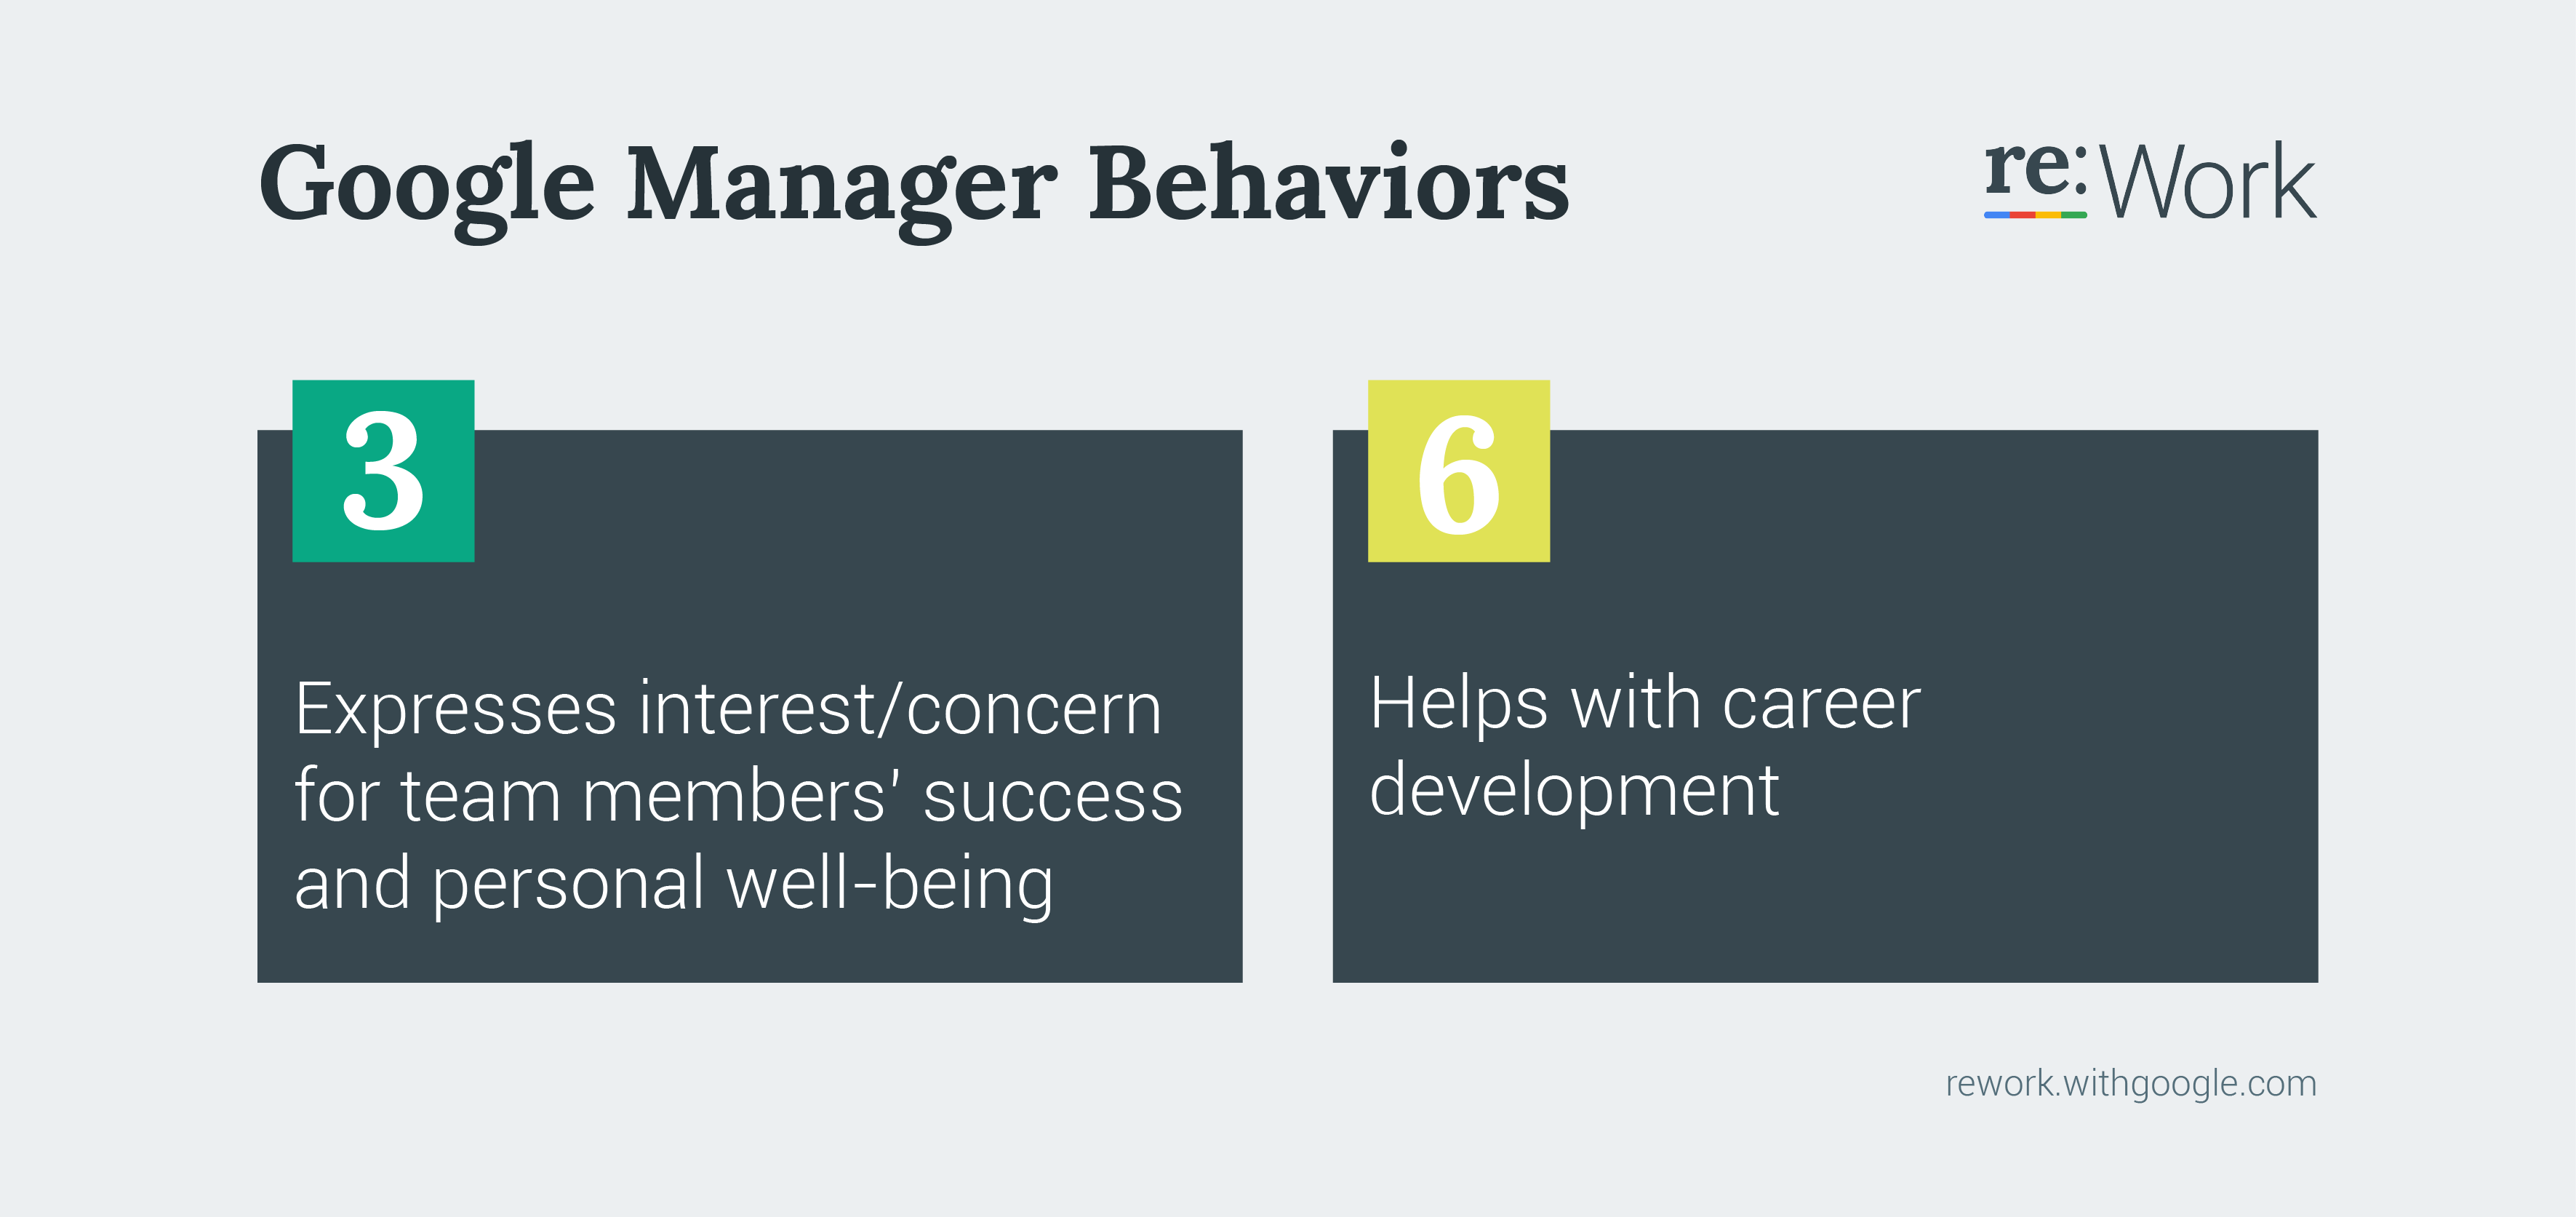 Google Manage Behaviors 3 Expresses interest/concern for team members' success and personal well-being. 6 Helps with career development.